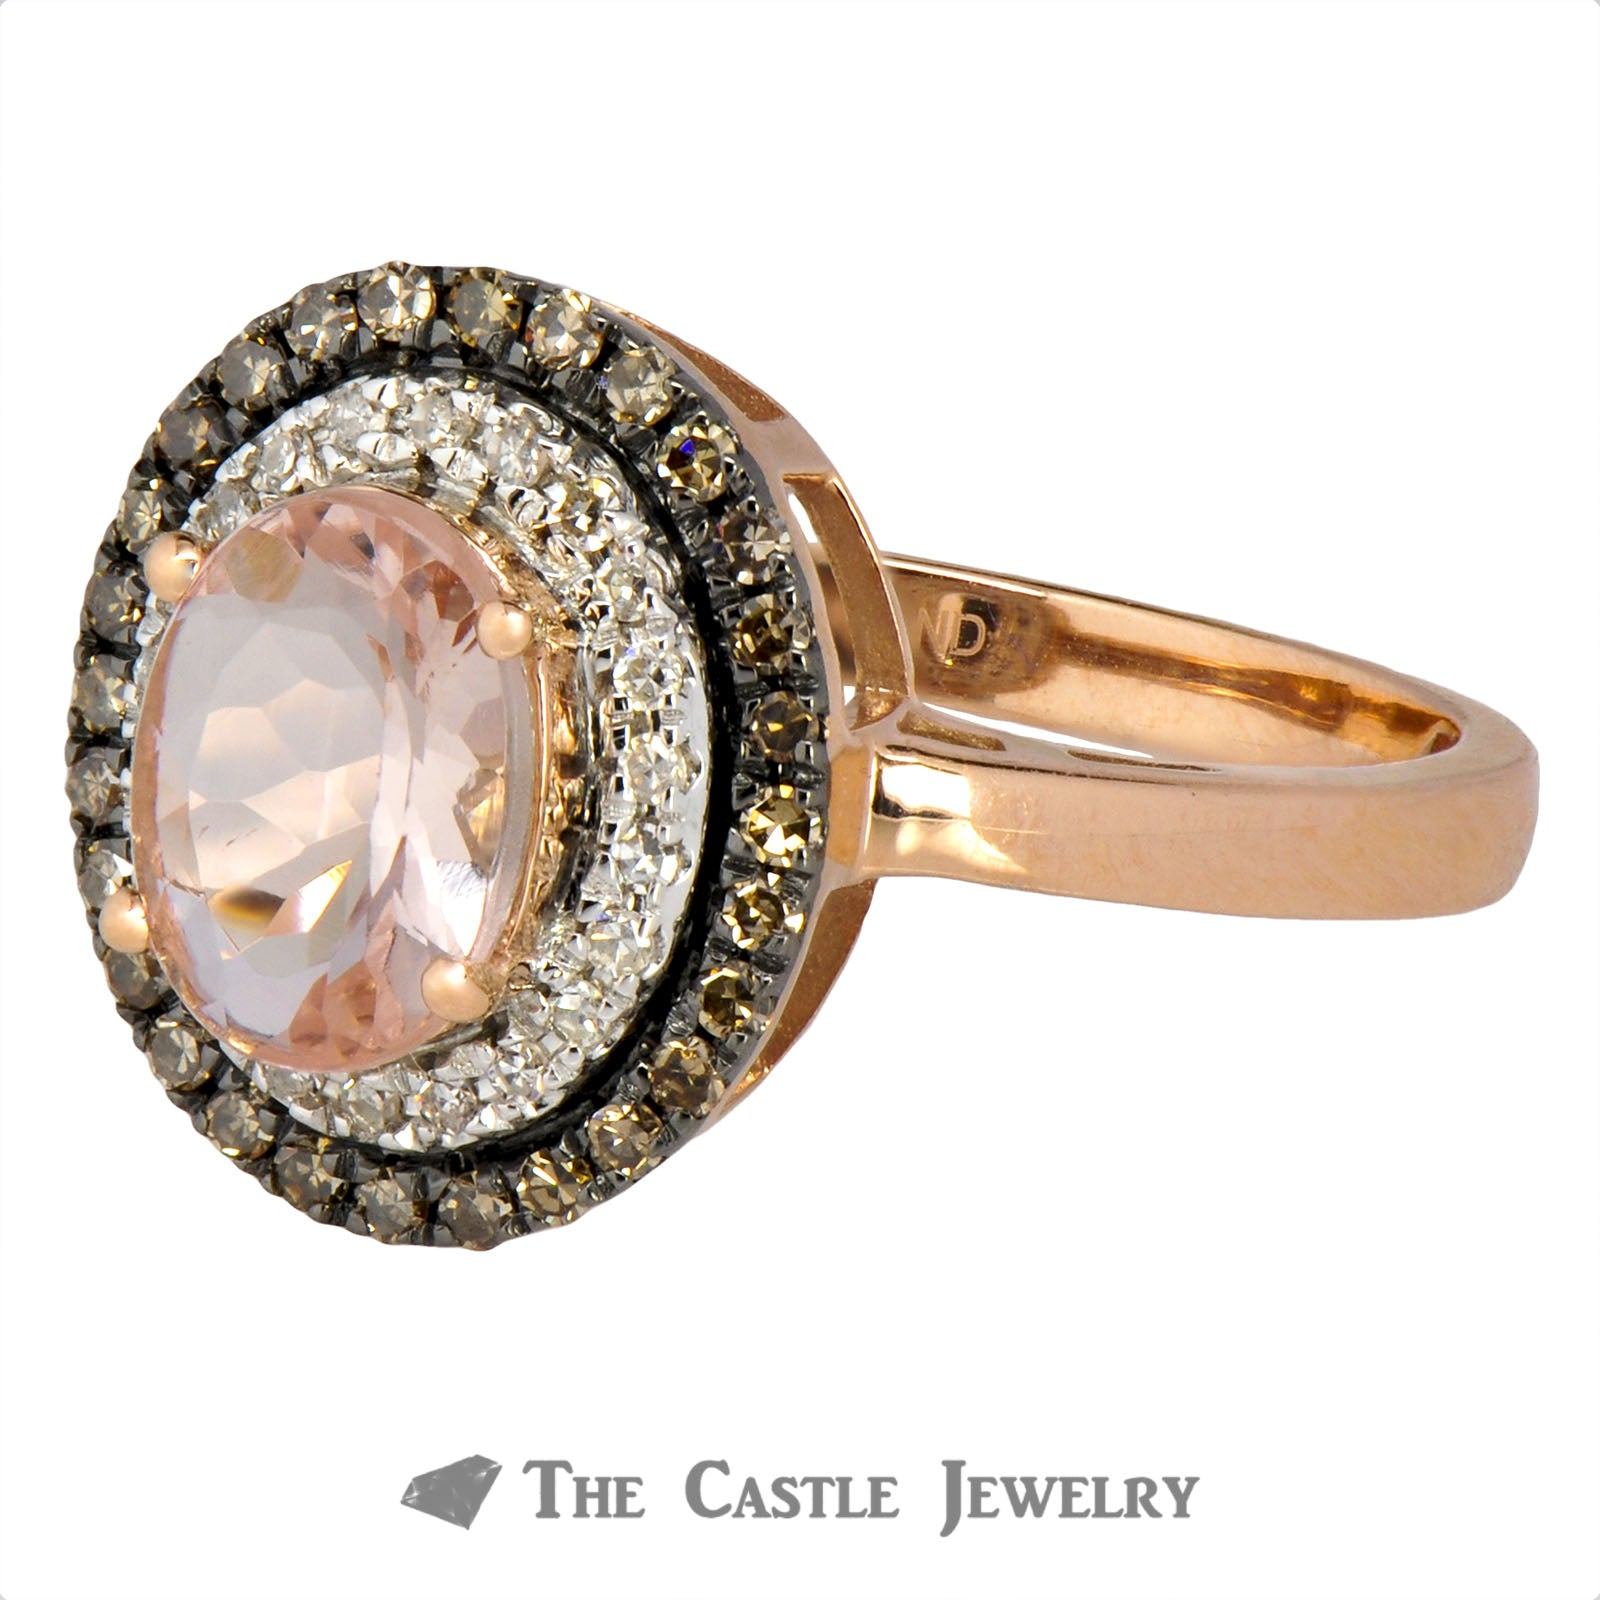 Double Halo Oval Morganite Ring with Round Chocolate Diamonds